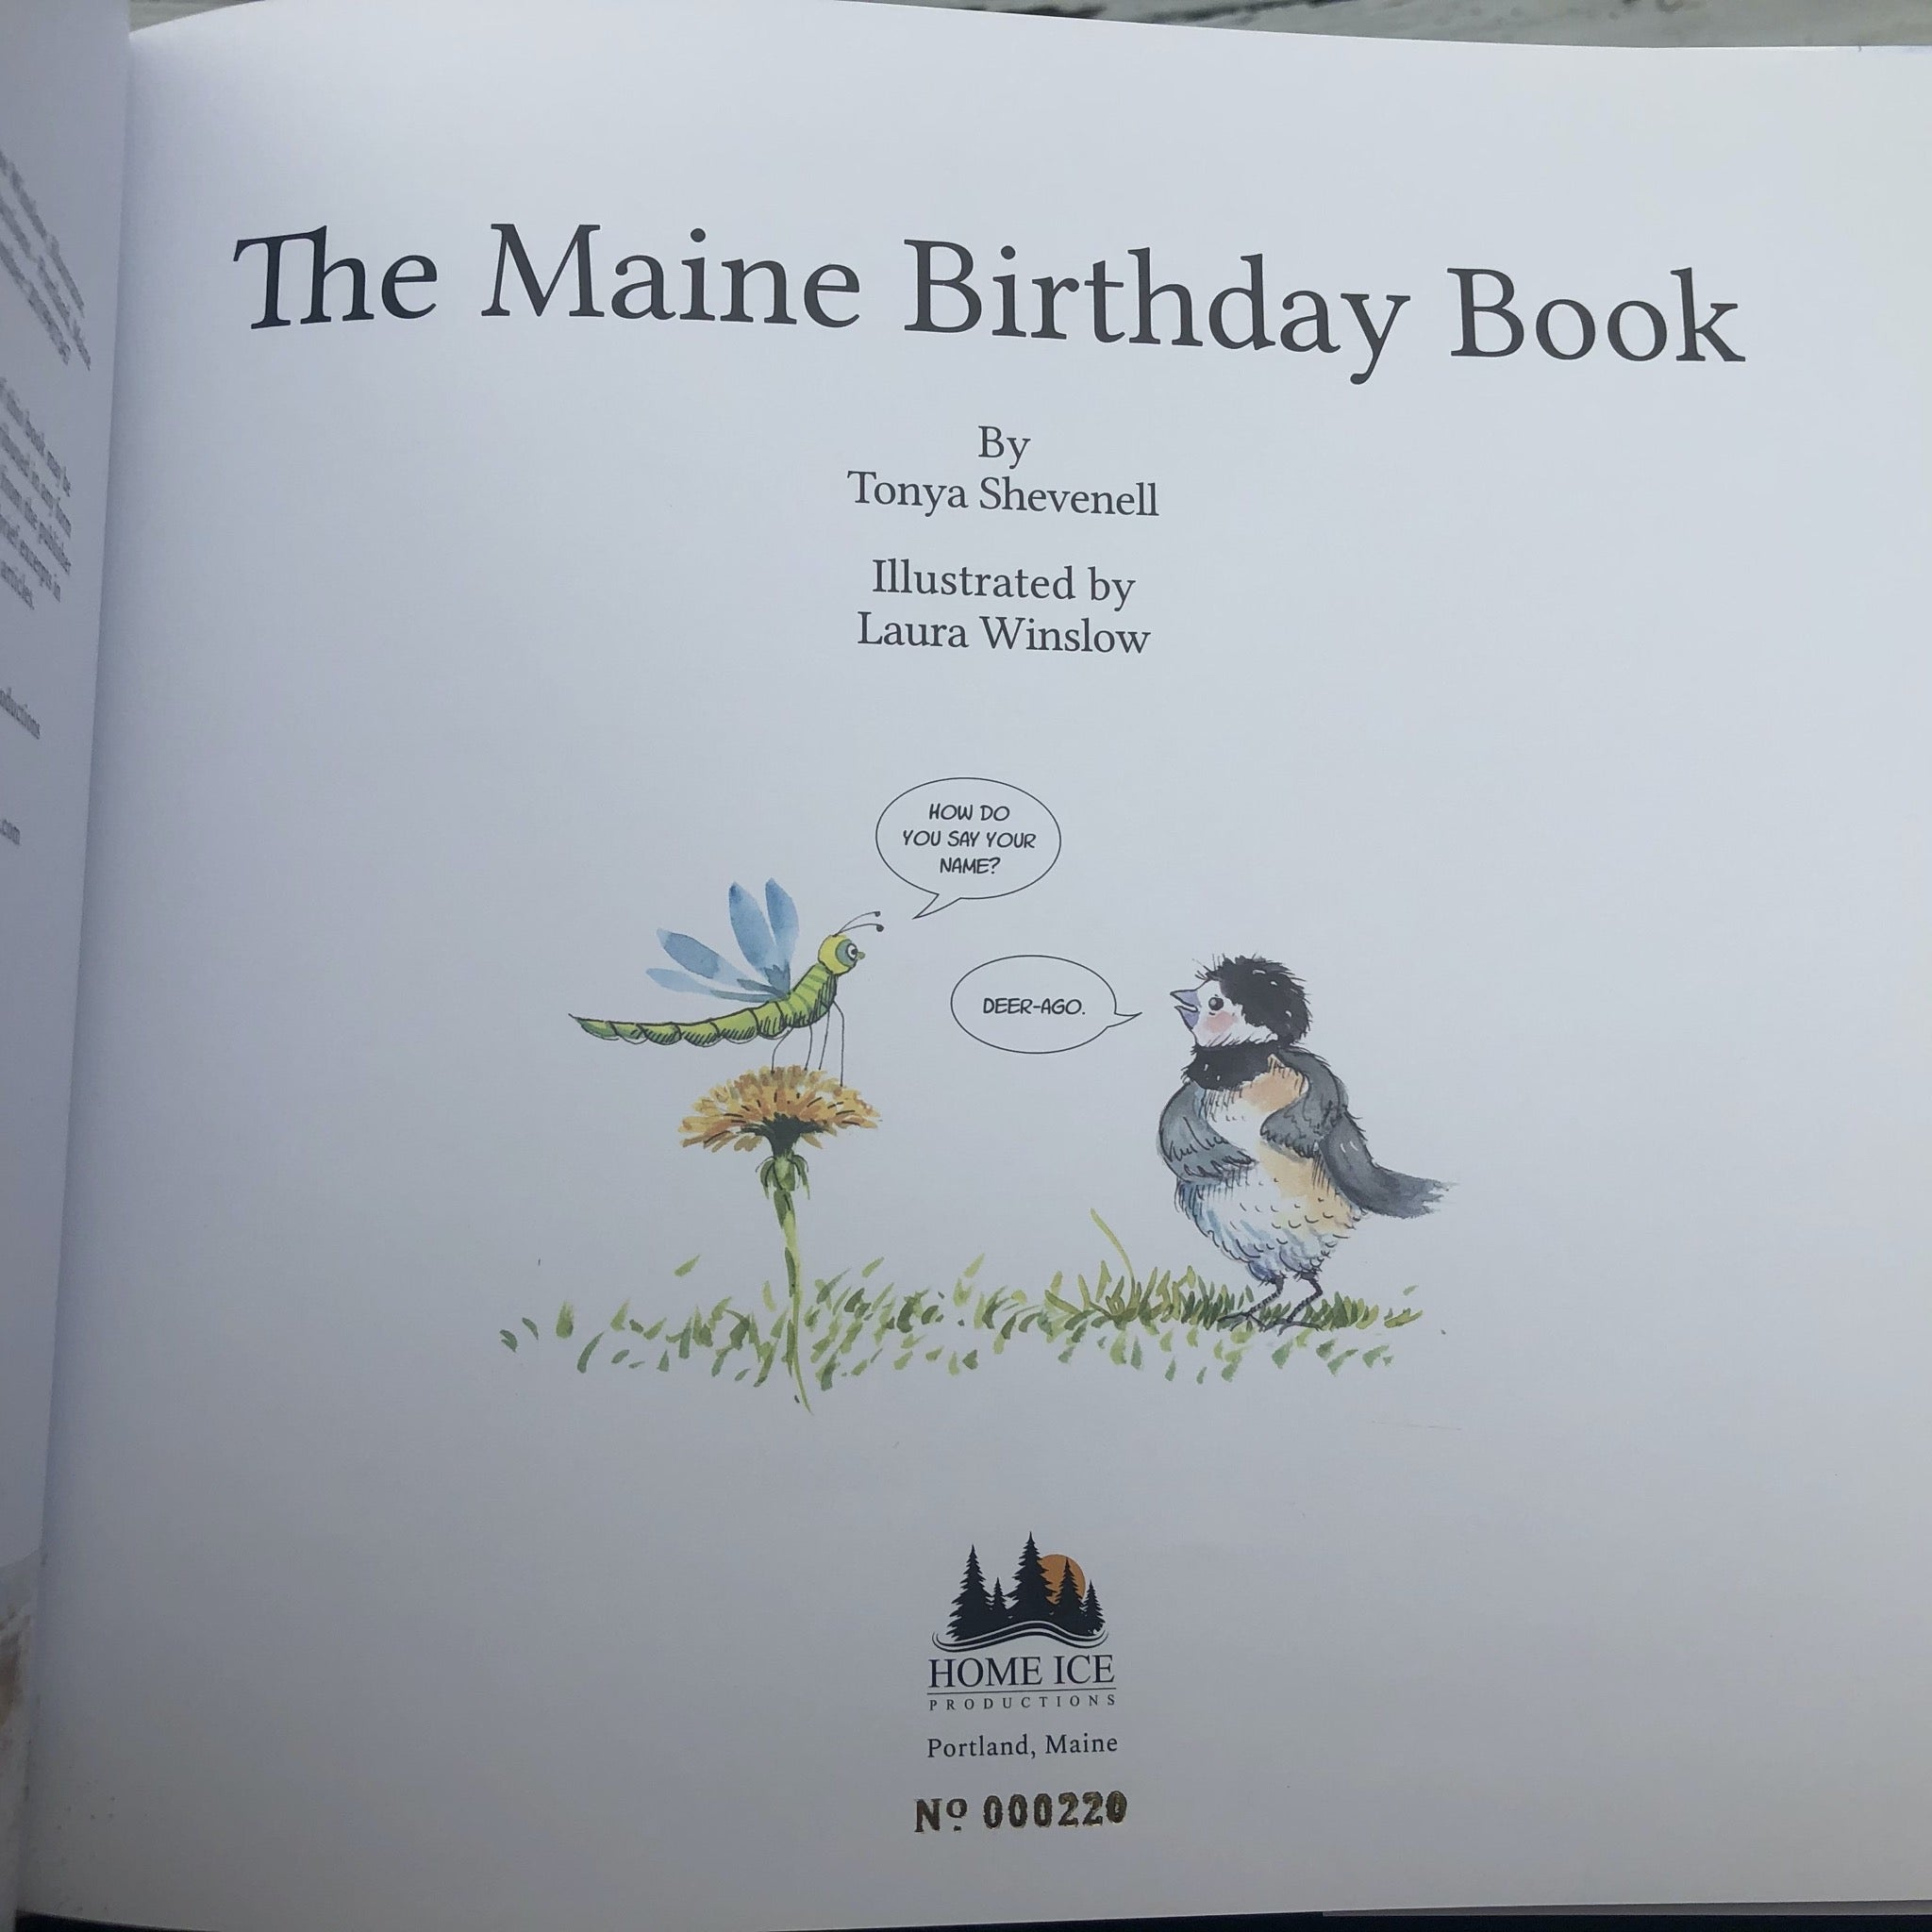 Book No. 220 - The Maine Birthday Book - Special collection: gold foil numbered book